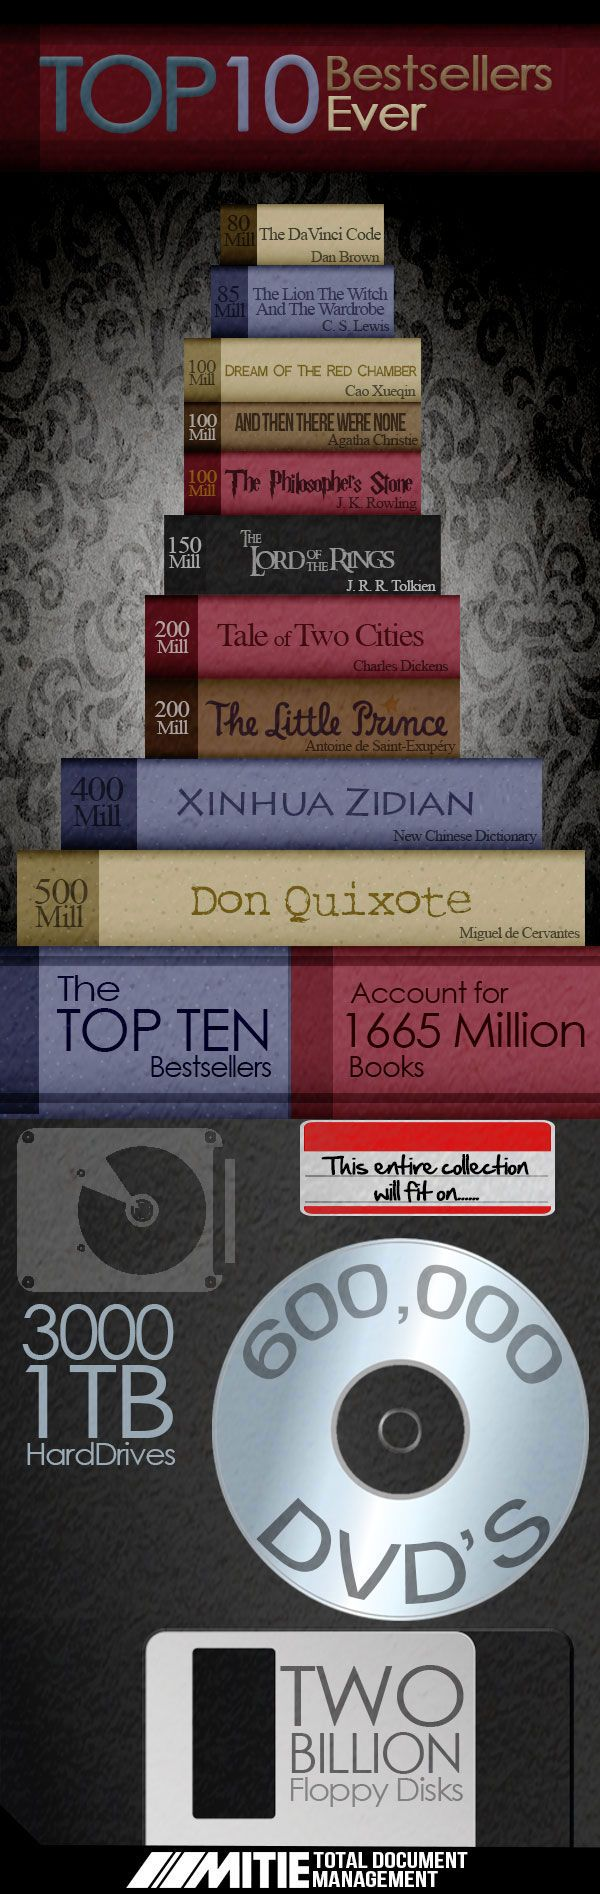 If You Ask Somebody What The Best Selling Book Of All Time Is, They Will